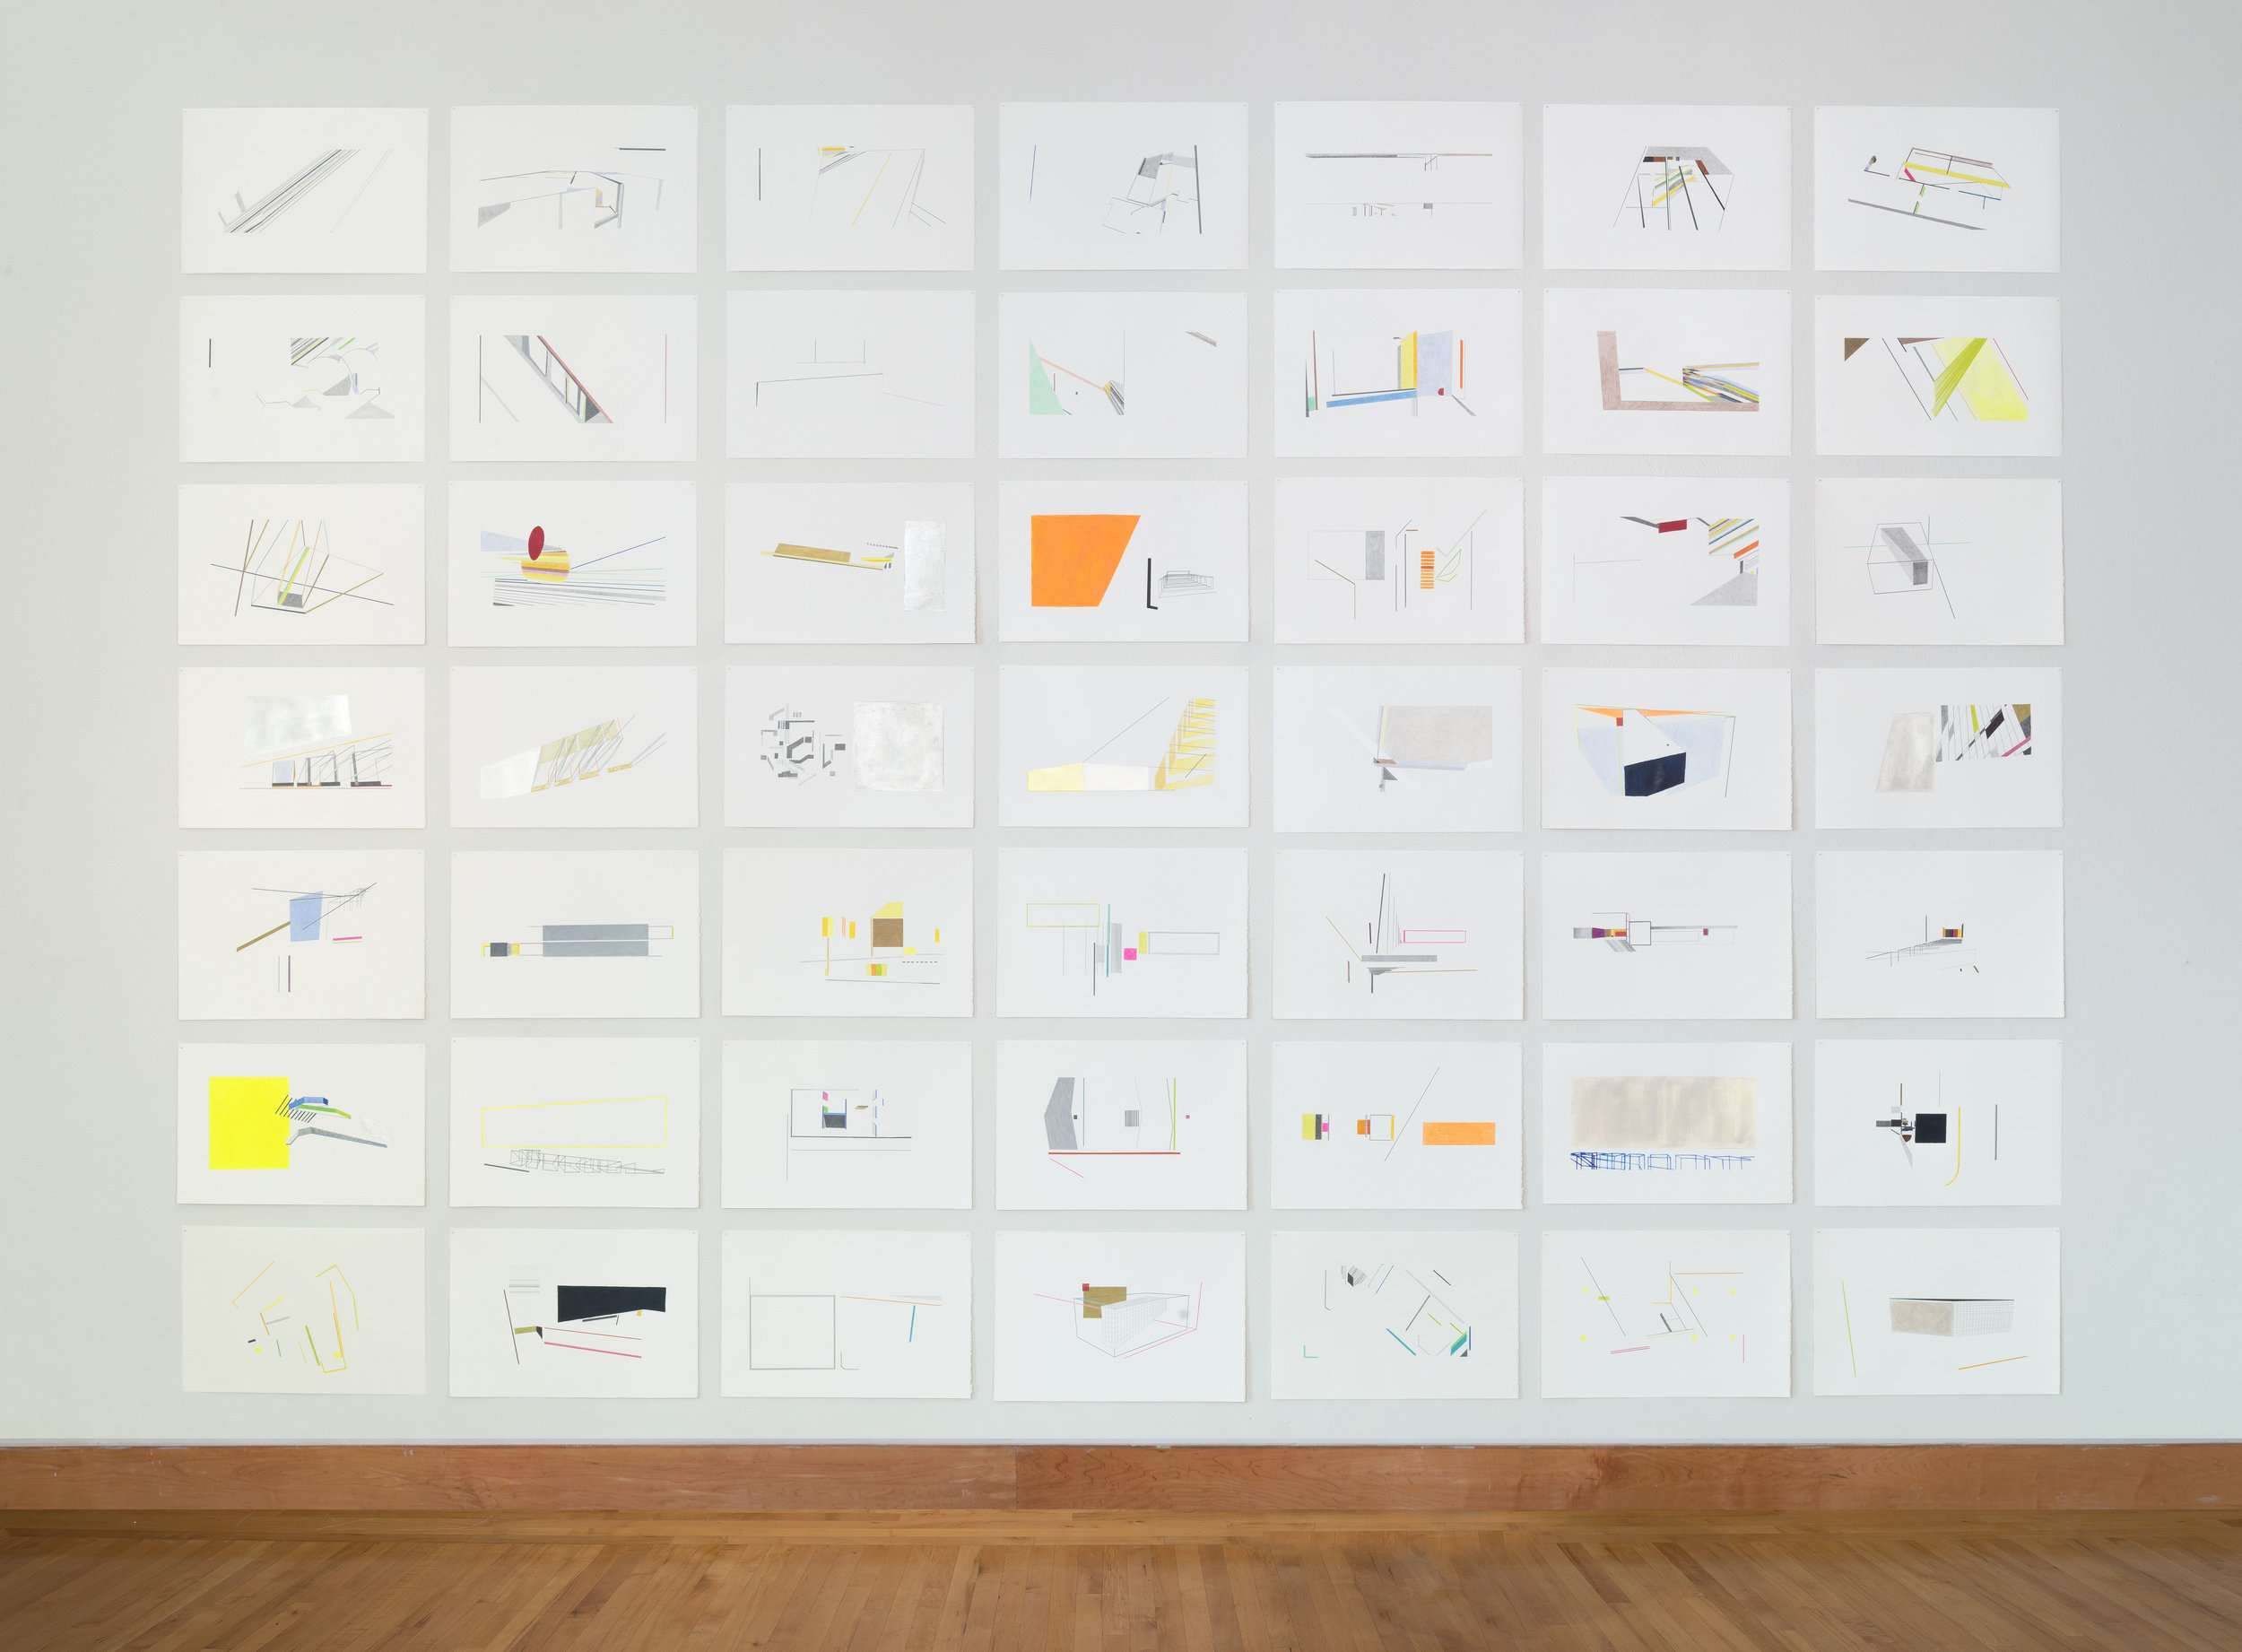 Anne Lindberg   work of the collective   2017 graphite, acrylic and colored pencil on paper 49 individual drawings 20 by 15 inches each; 17 by 10 feet overall photography by EG Schempf